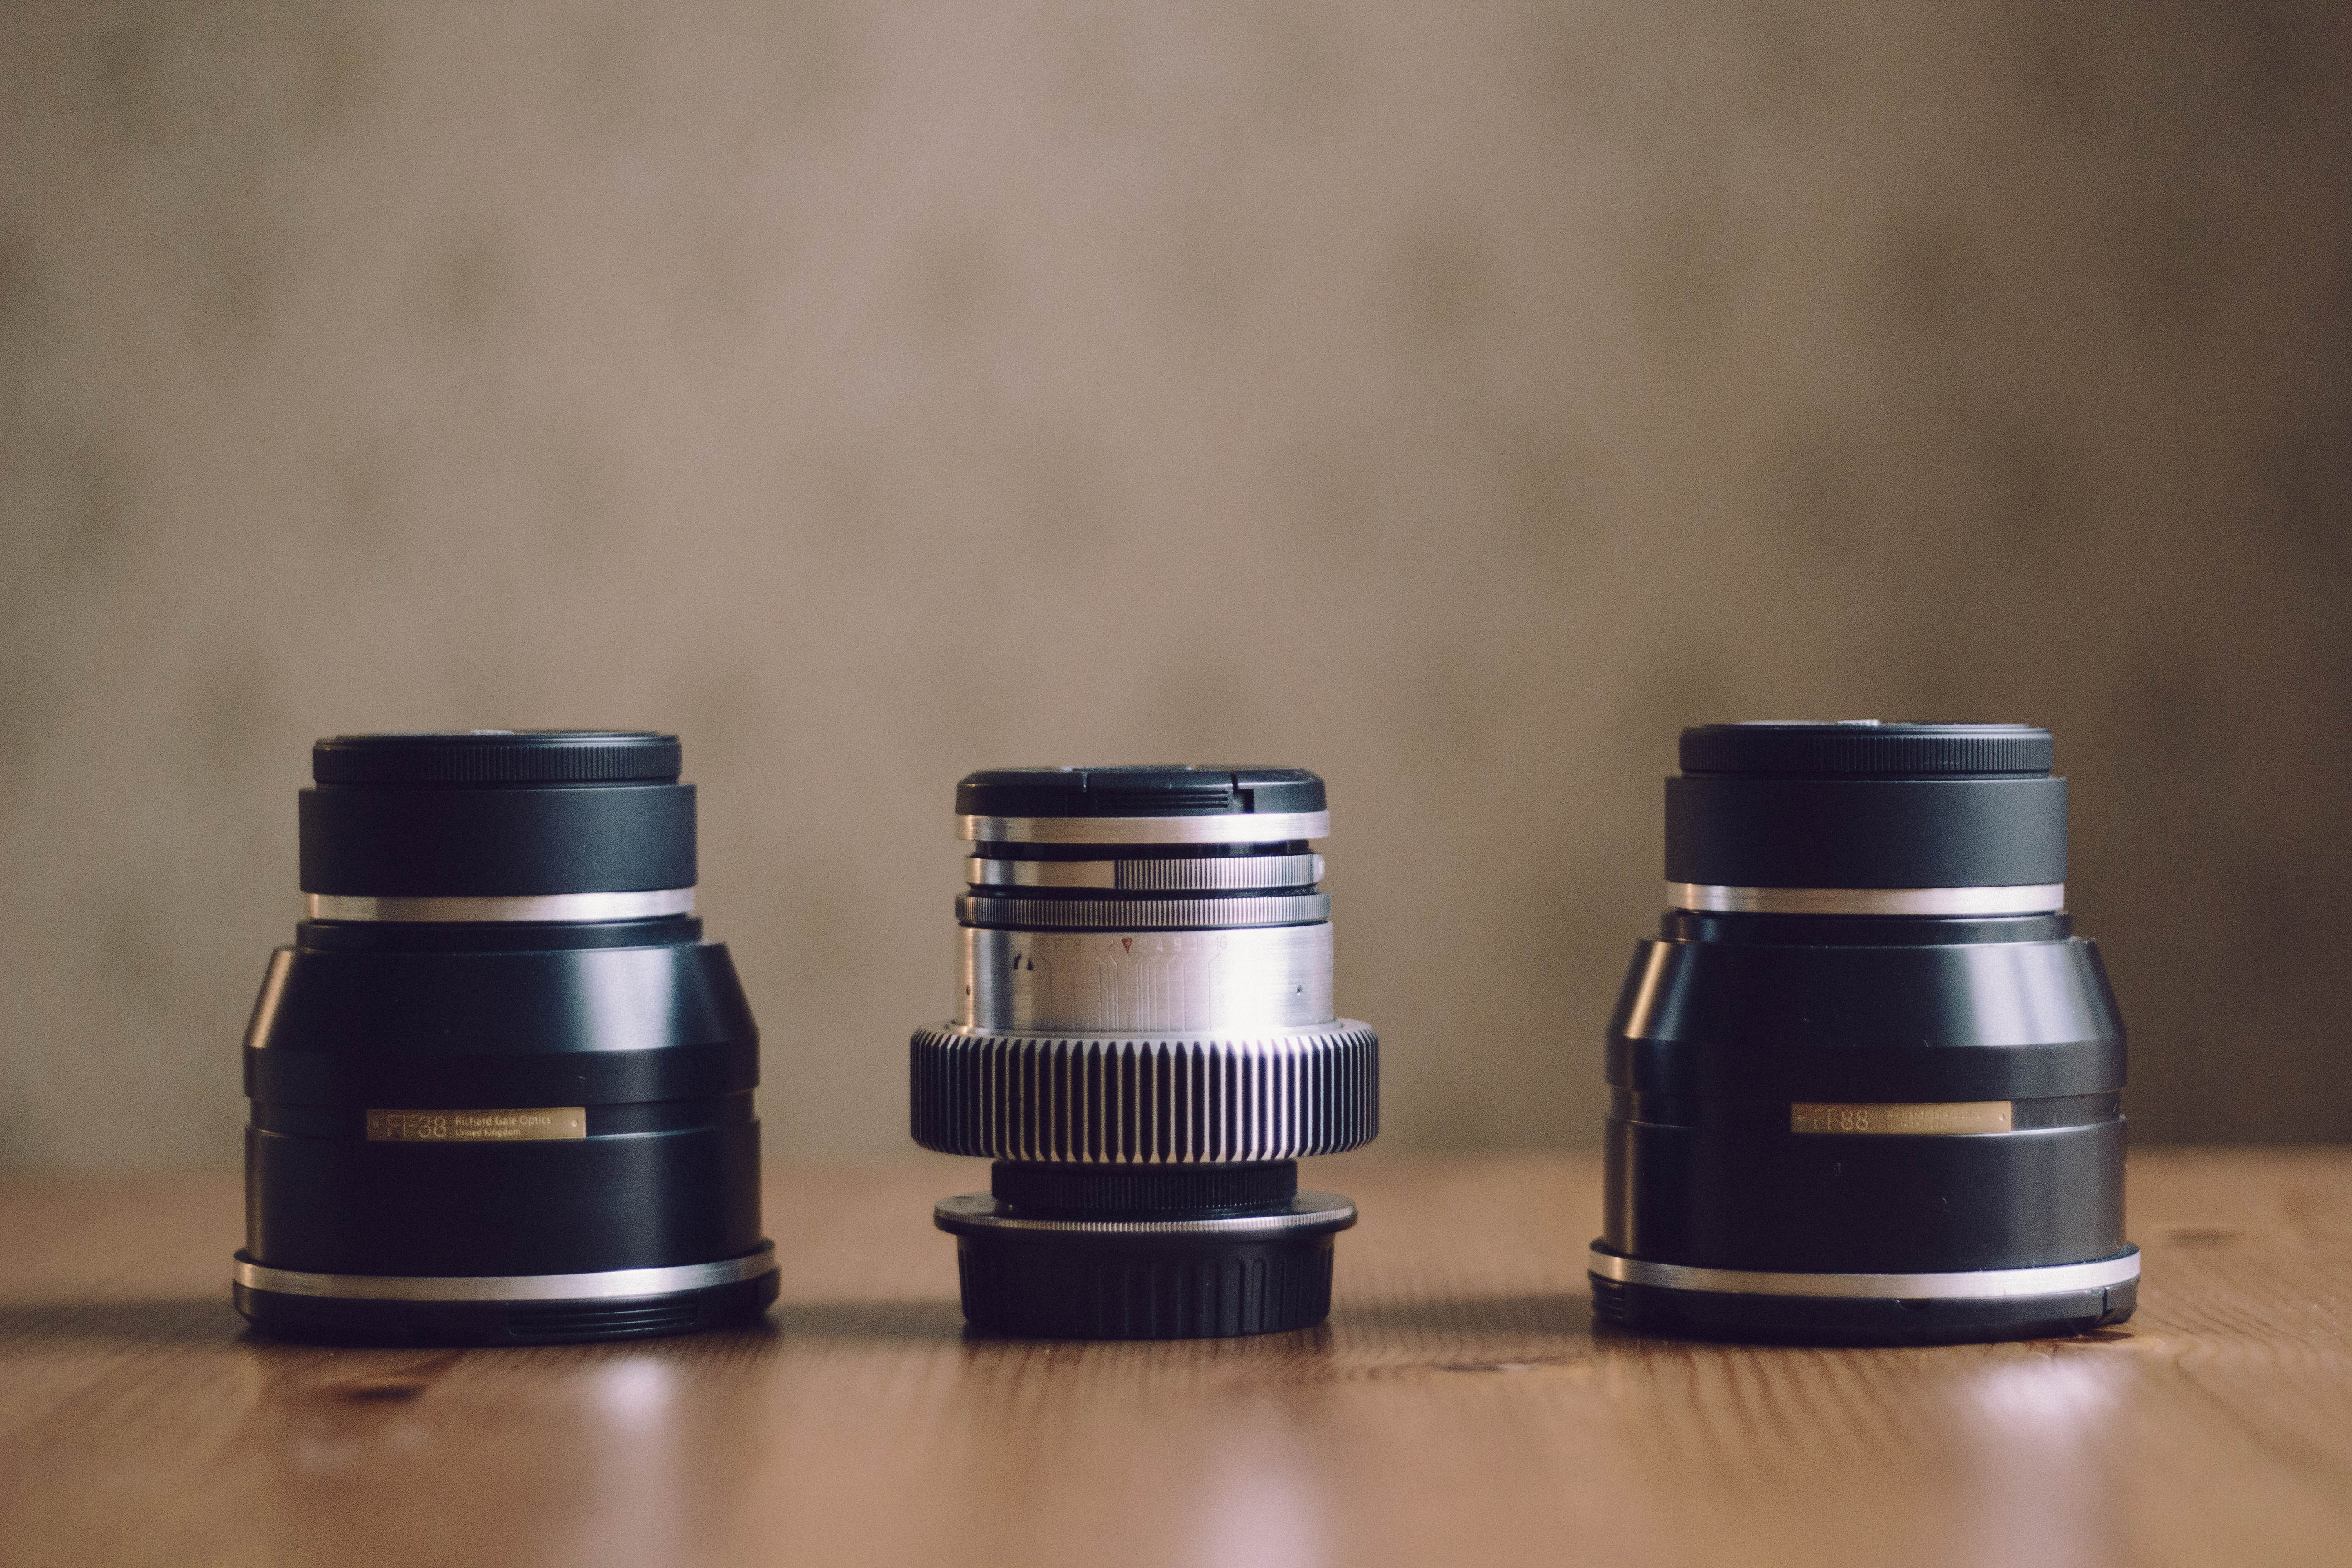 Photo: My Dog Schidt Optics (38mm, 58mm and 88mm). The lenses on the sides are wide and tele converters to the 58mm lens. Anders Lonnfeldt